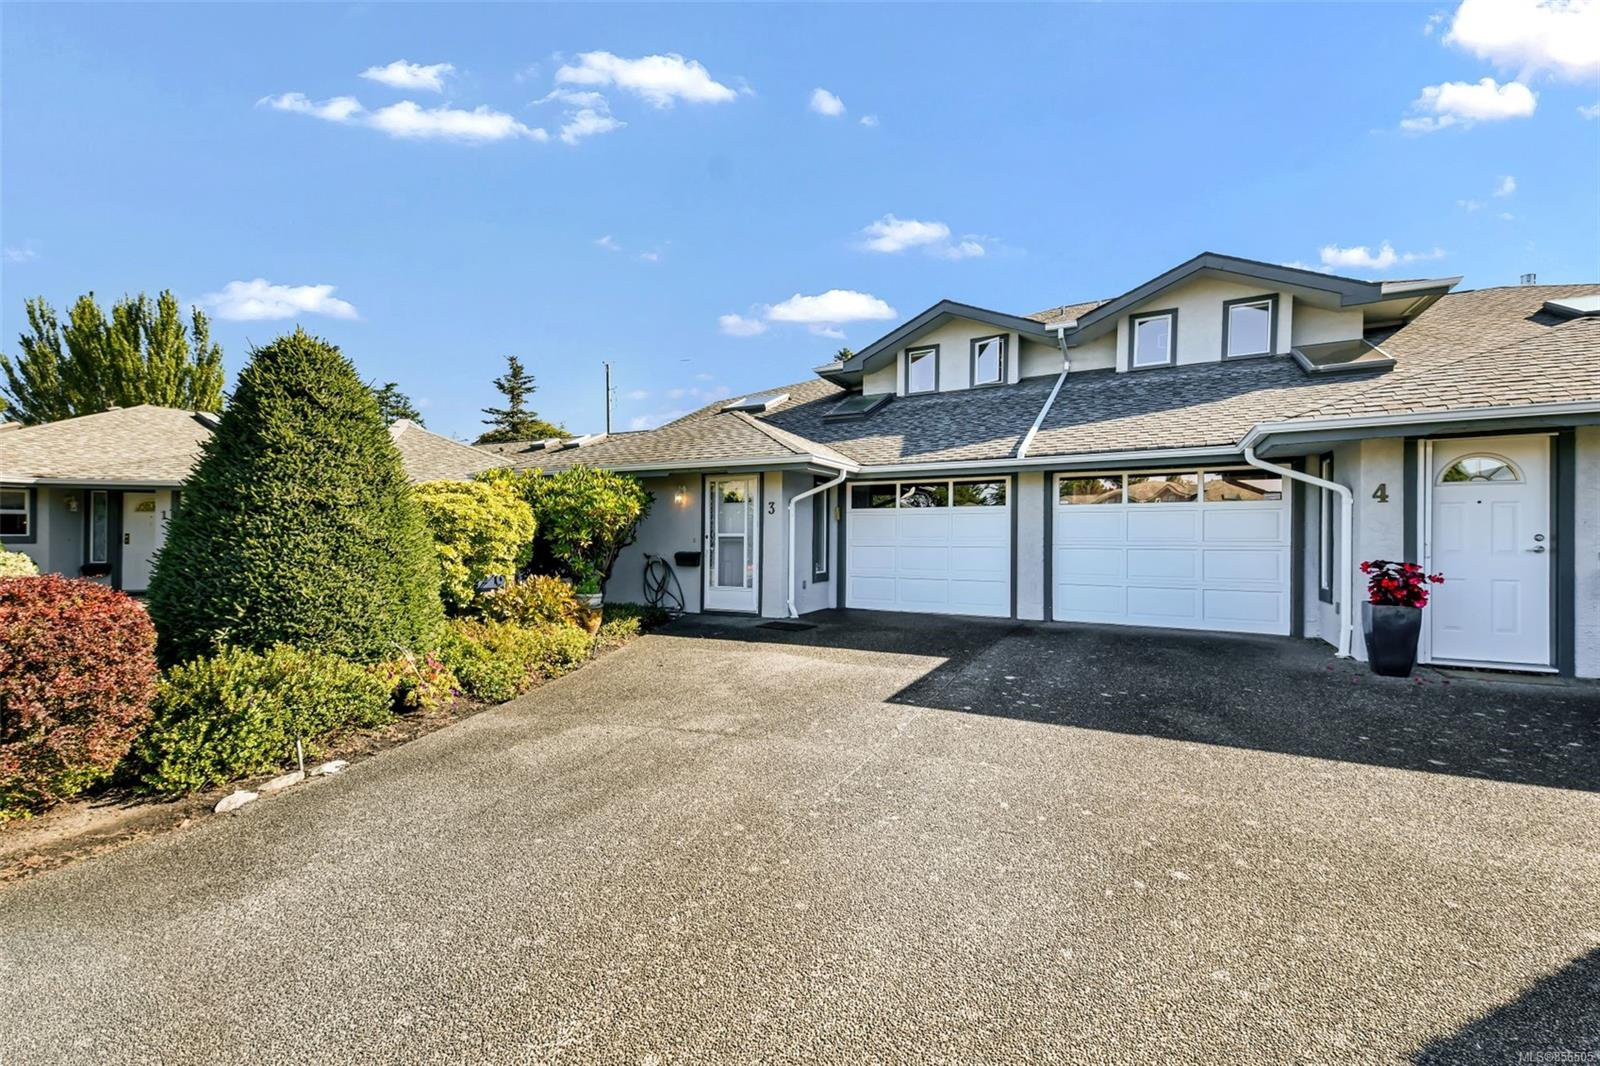 Main Photo: 3 1717 Blair Ave in : SE Lambrick Park Row/Townhouse for sale (Saanich East)  : MLS®# 856505